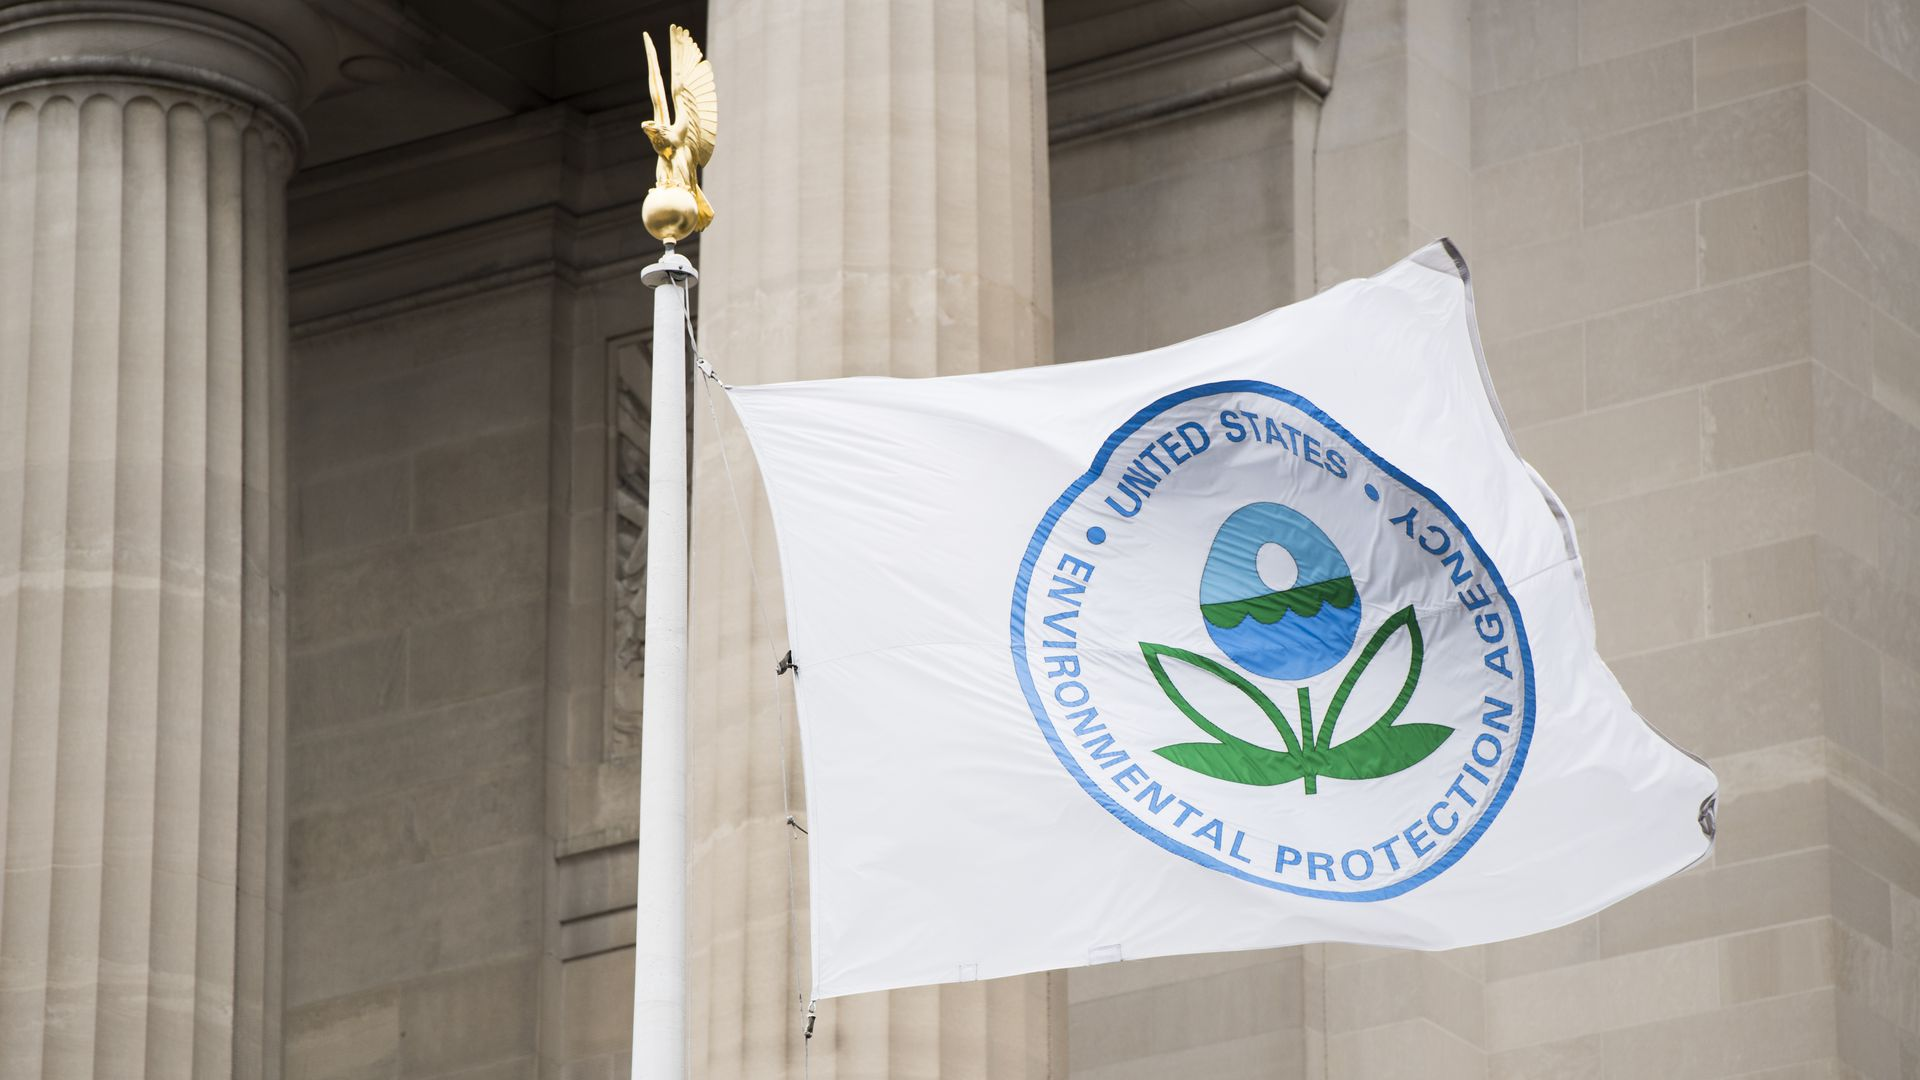 In this image, the EPA logo is displayed on a flag in front of a pillared federal building.